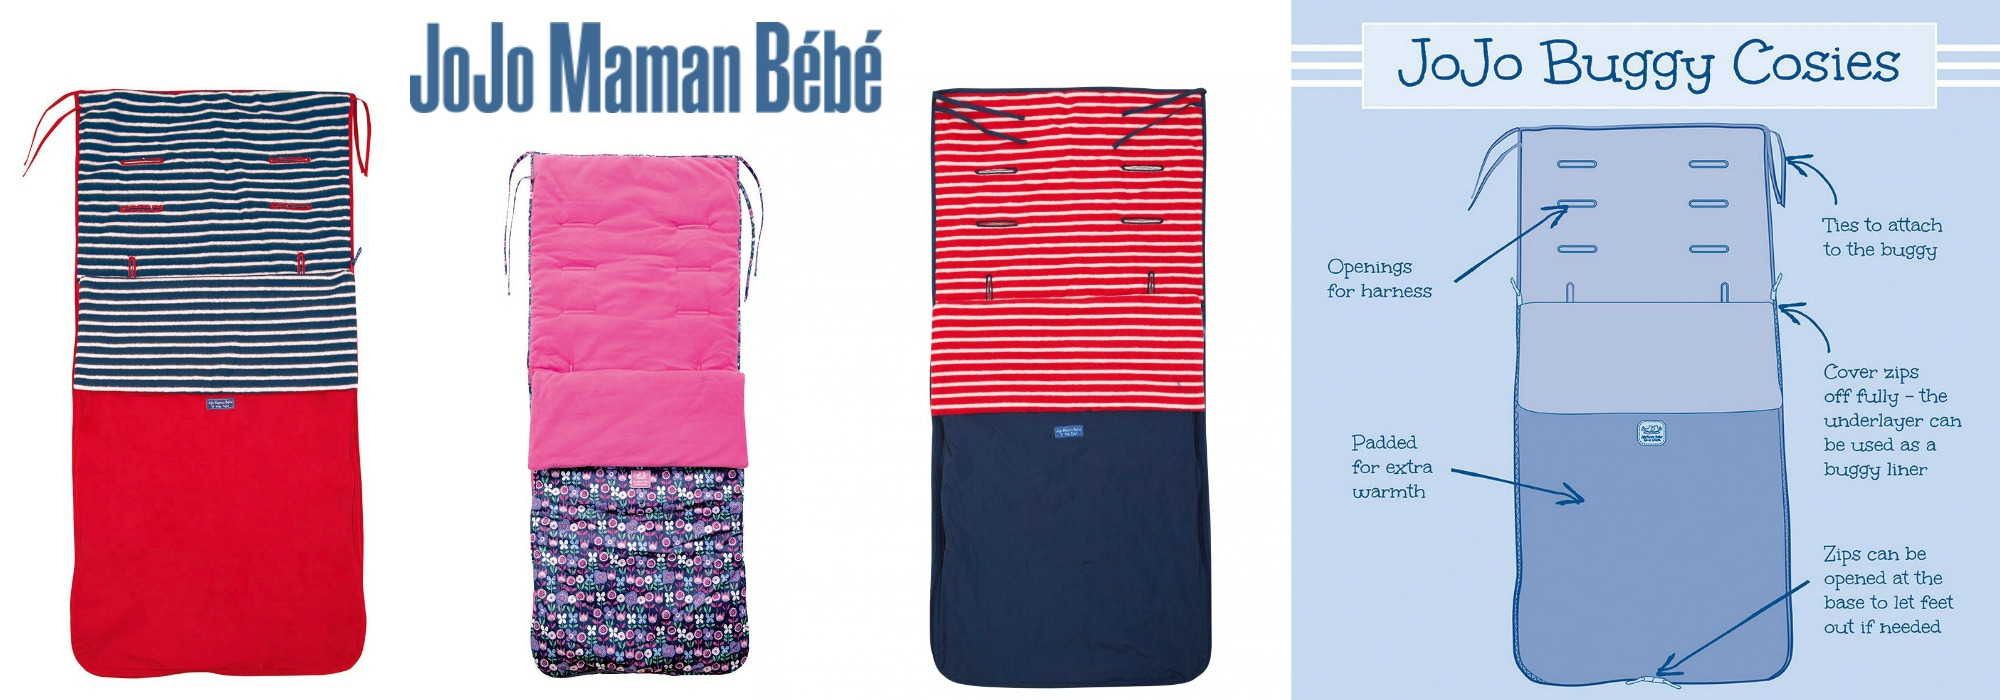 Win a JoJo Maman Bebe Footmuff in US Japan Fam's $500 value